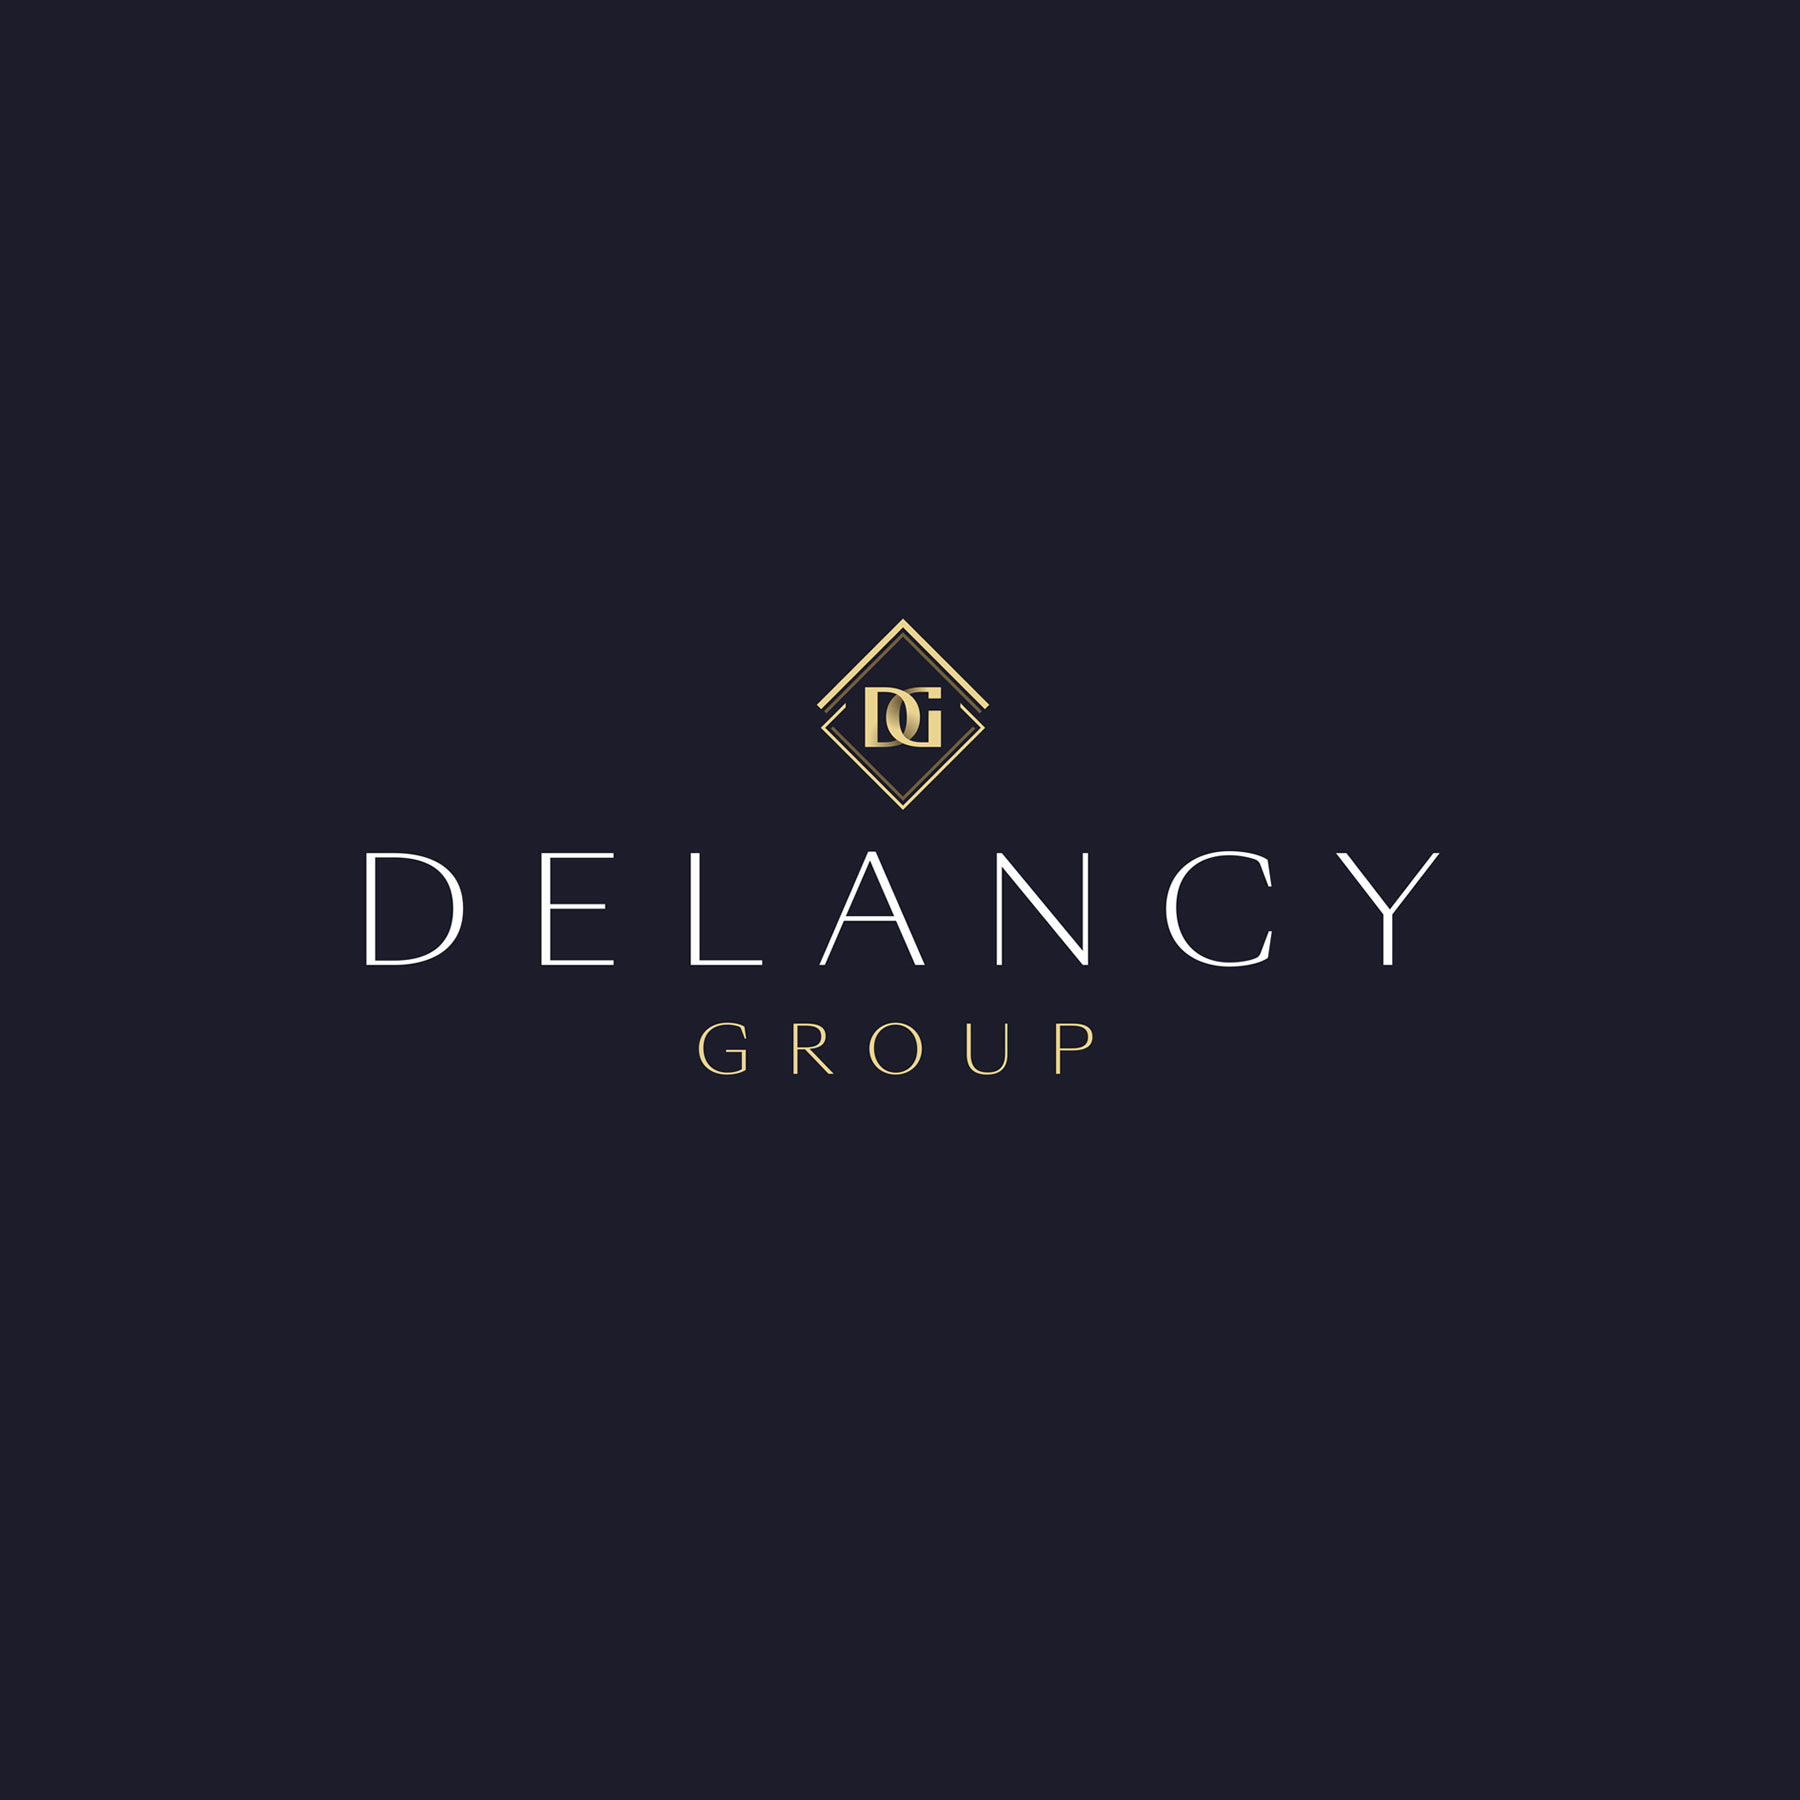 Delancy Group